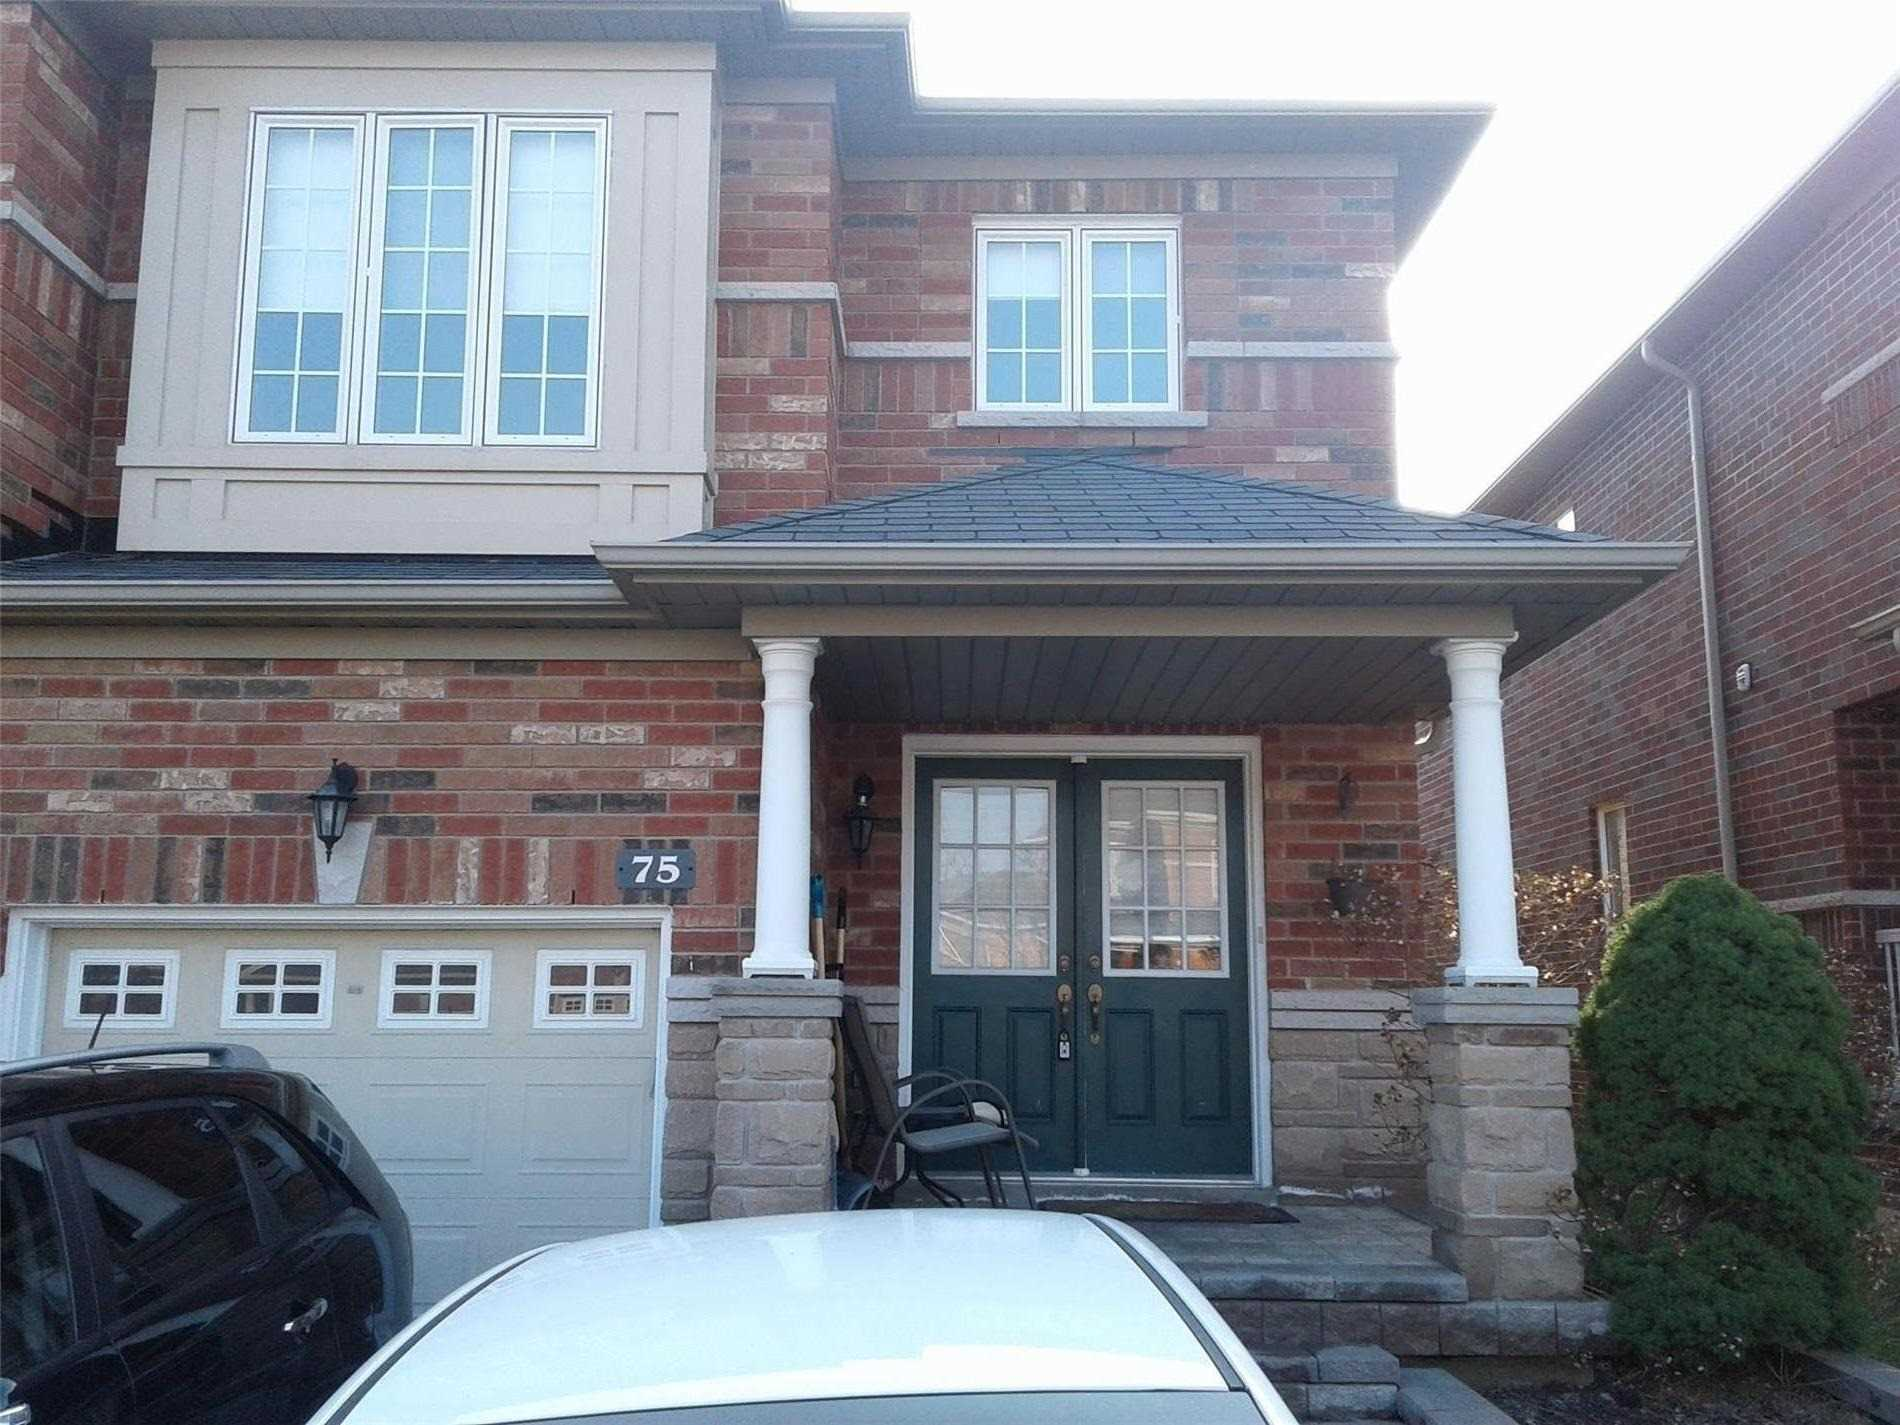 Wonderful Finished Luxury Basement Unit In Beautiful Richmond Hill. Quiet Neighborhood. Separate Entrance With Walk Out. Parks And Public Transit Nearby. Prospective Tenant Must Pay 1/3 Of Monthly Utilities. 1 Outdoor Parking Spot Included. Ensuite Laundry With Washing Machine And Dryer. Fridge, Stove And Dishwasher In Kitchen. No Smokers, No Pets. Tenant Insurance Is Required.